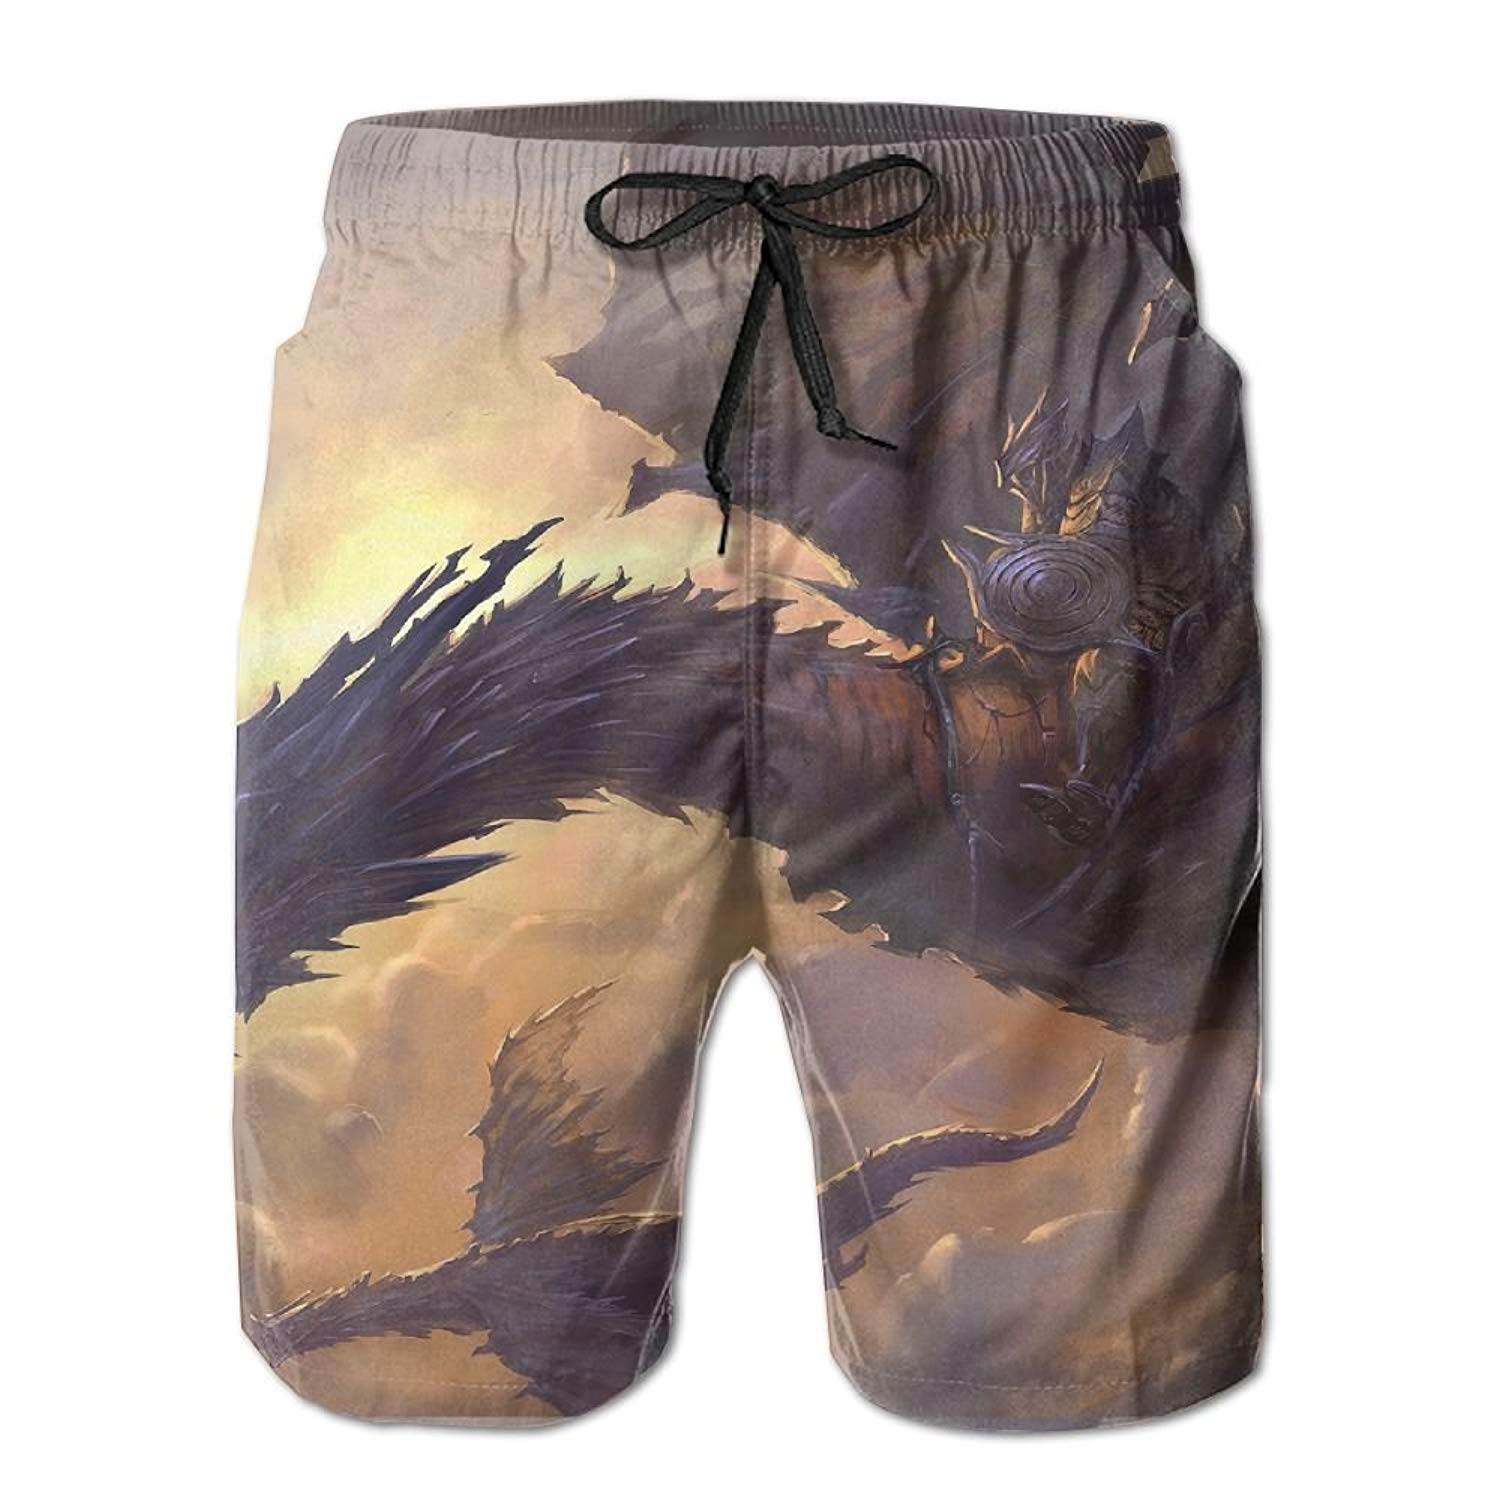 0be150c2b3 Get Quotations · Dragon Sky Clouds Rider Wings Black Fantasy Handsome  Fashion Summer Cool Shorts Swimming Trunks Beachwear Beach